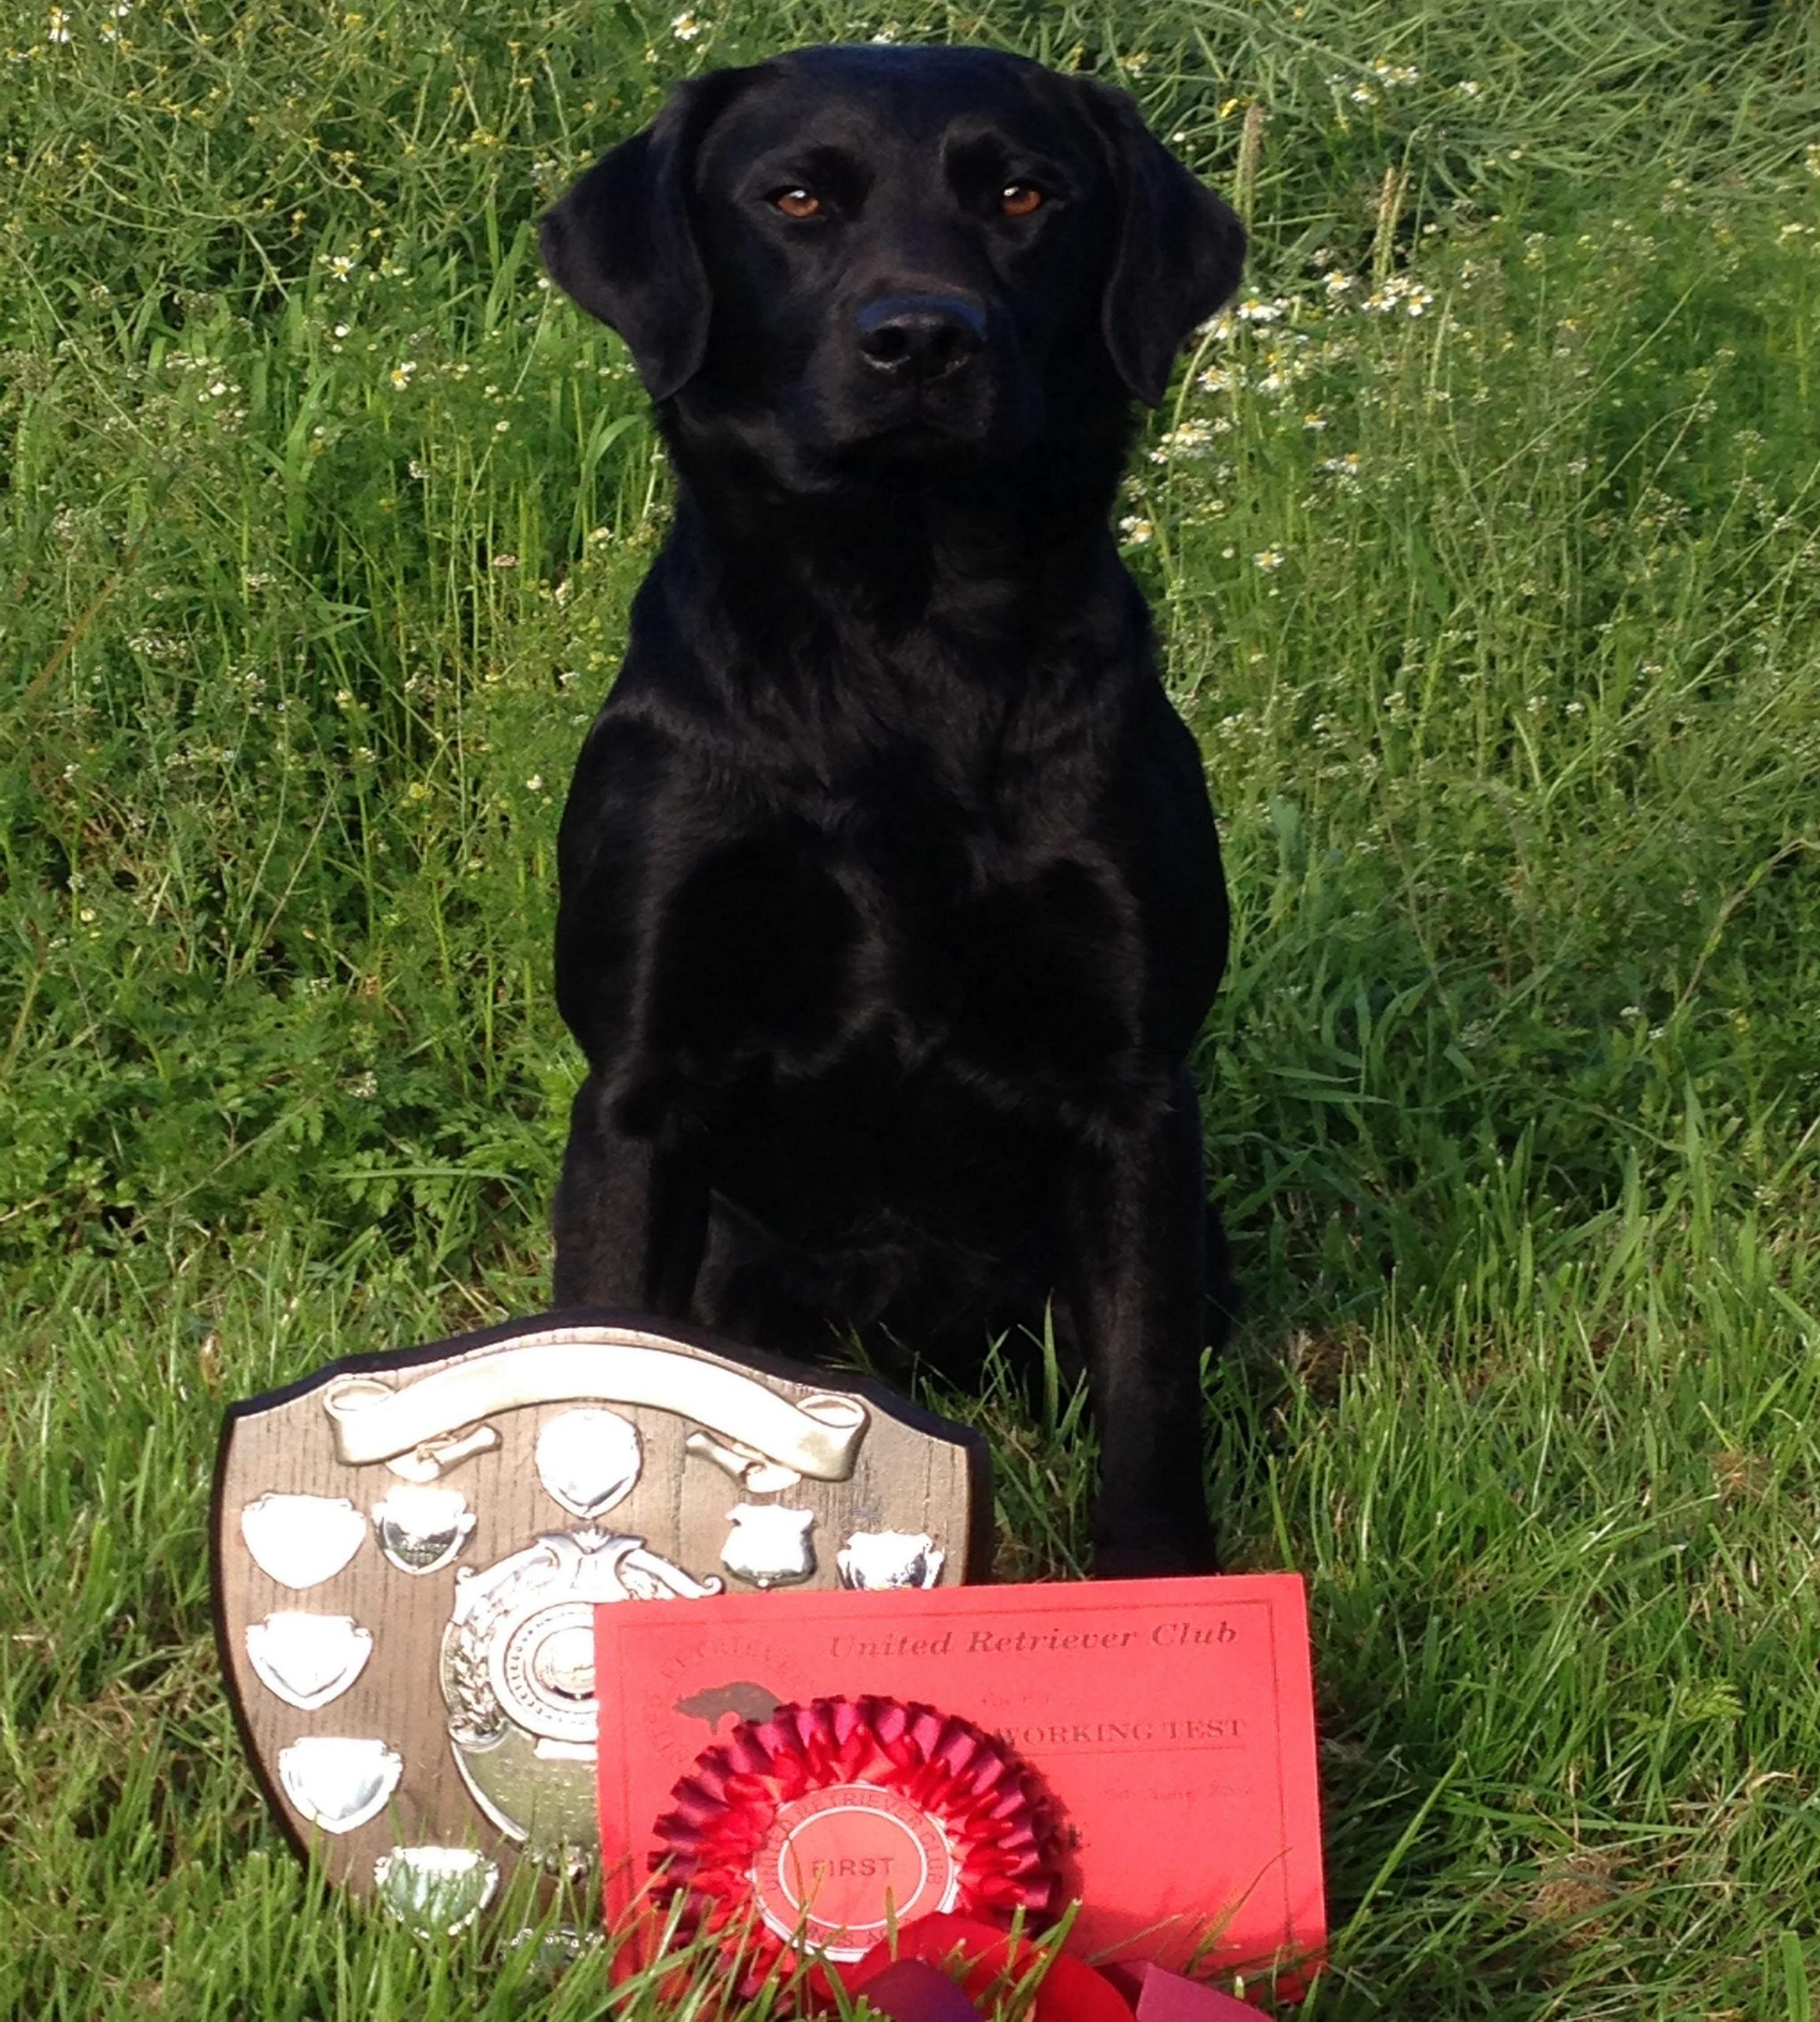 Winner of puppy trails competition with winners shield and red rosette.